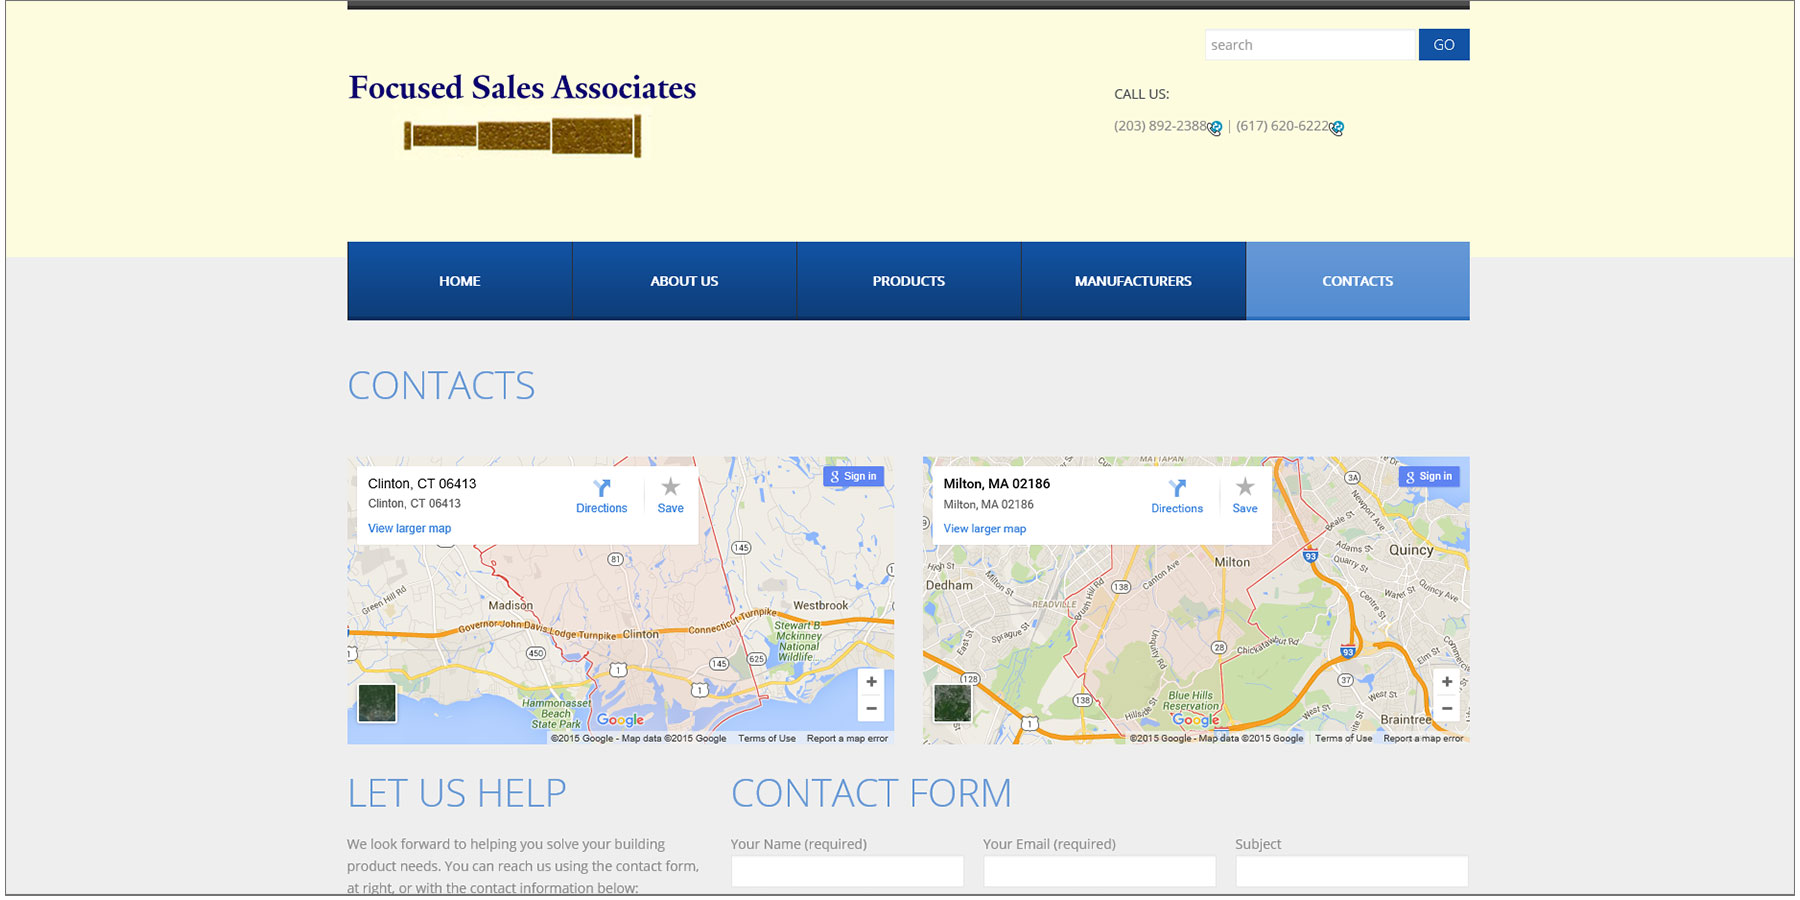 Focused Sales Associates Contacts